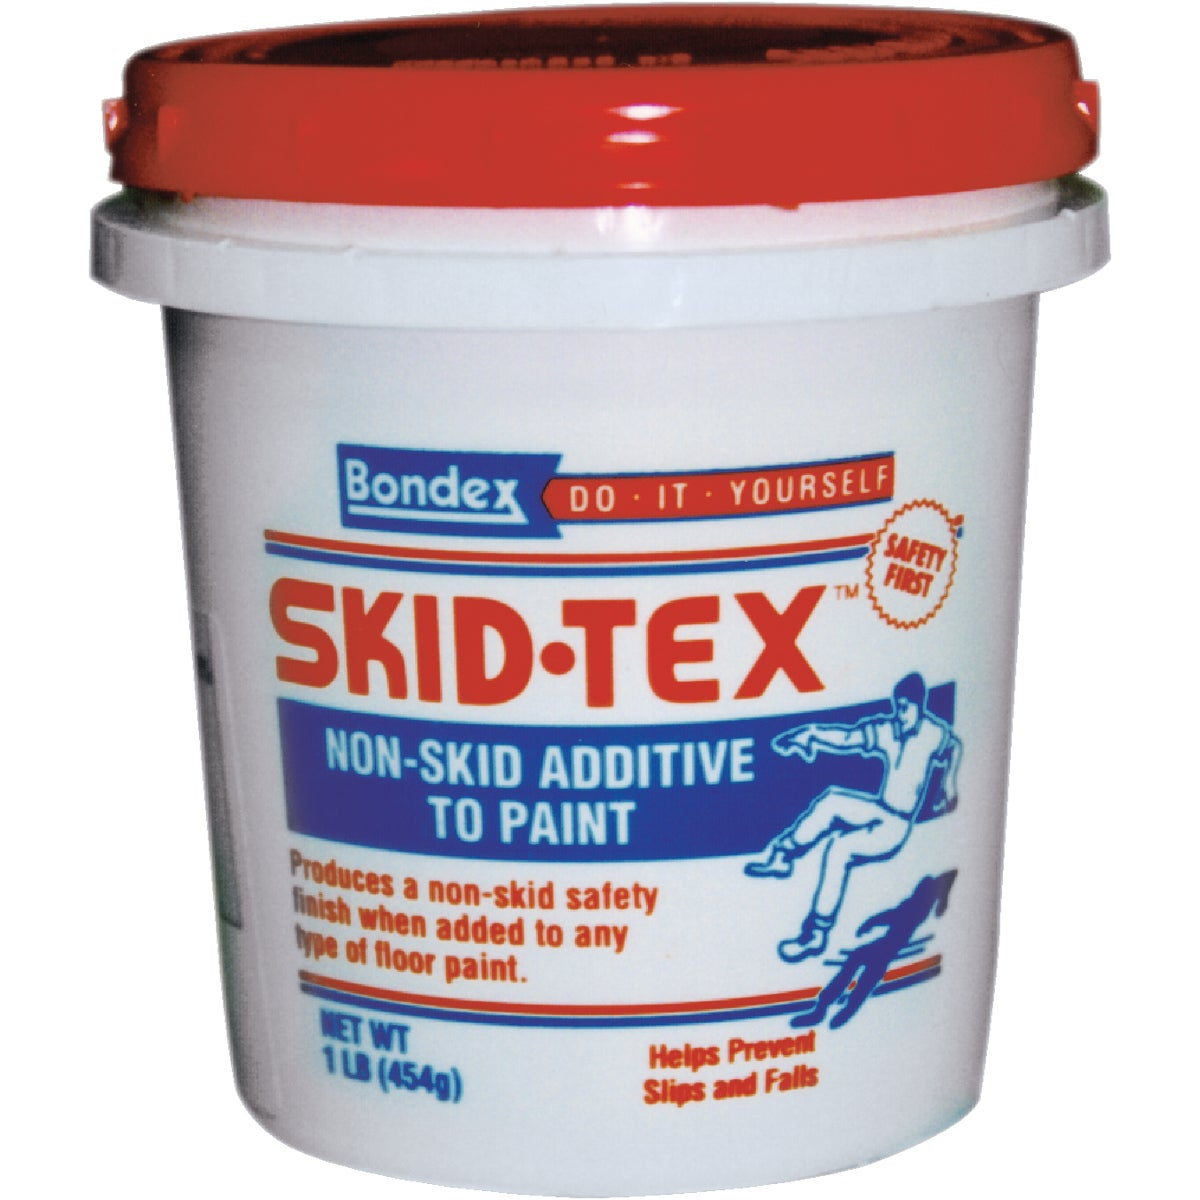 NONSKID PAINT ADDITIVE - 22242 by Rustoleum